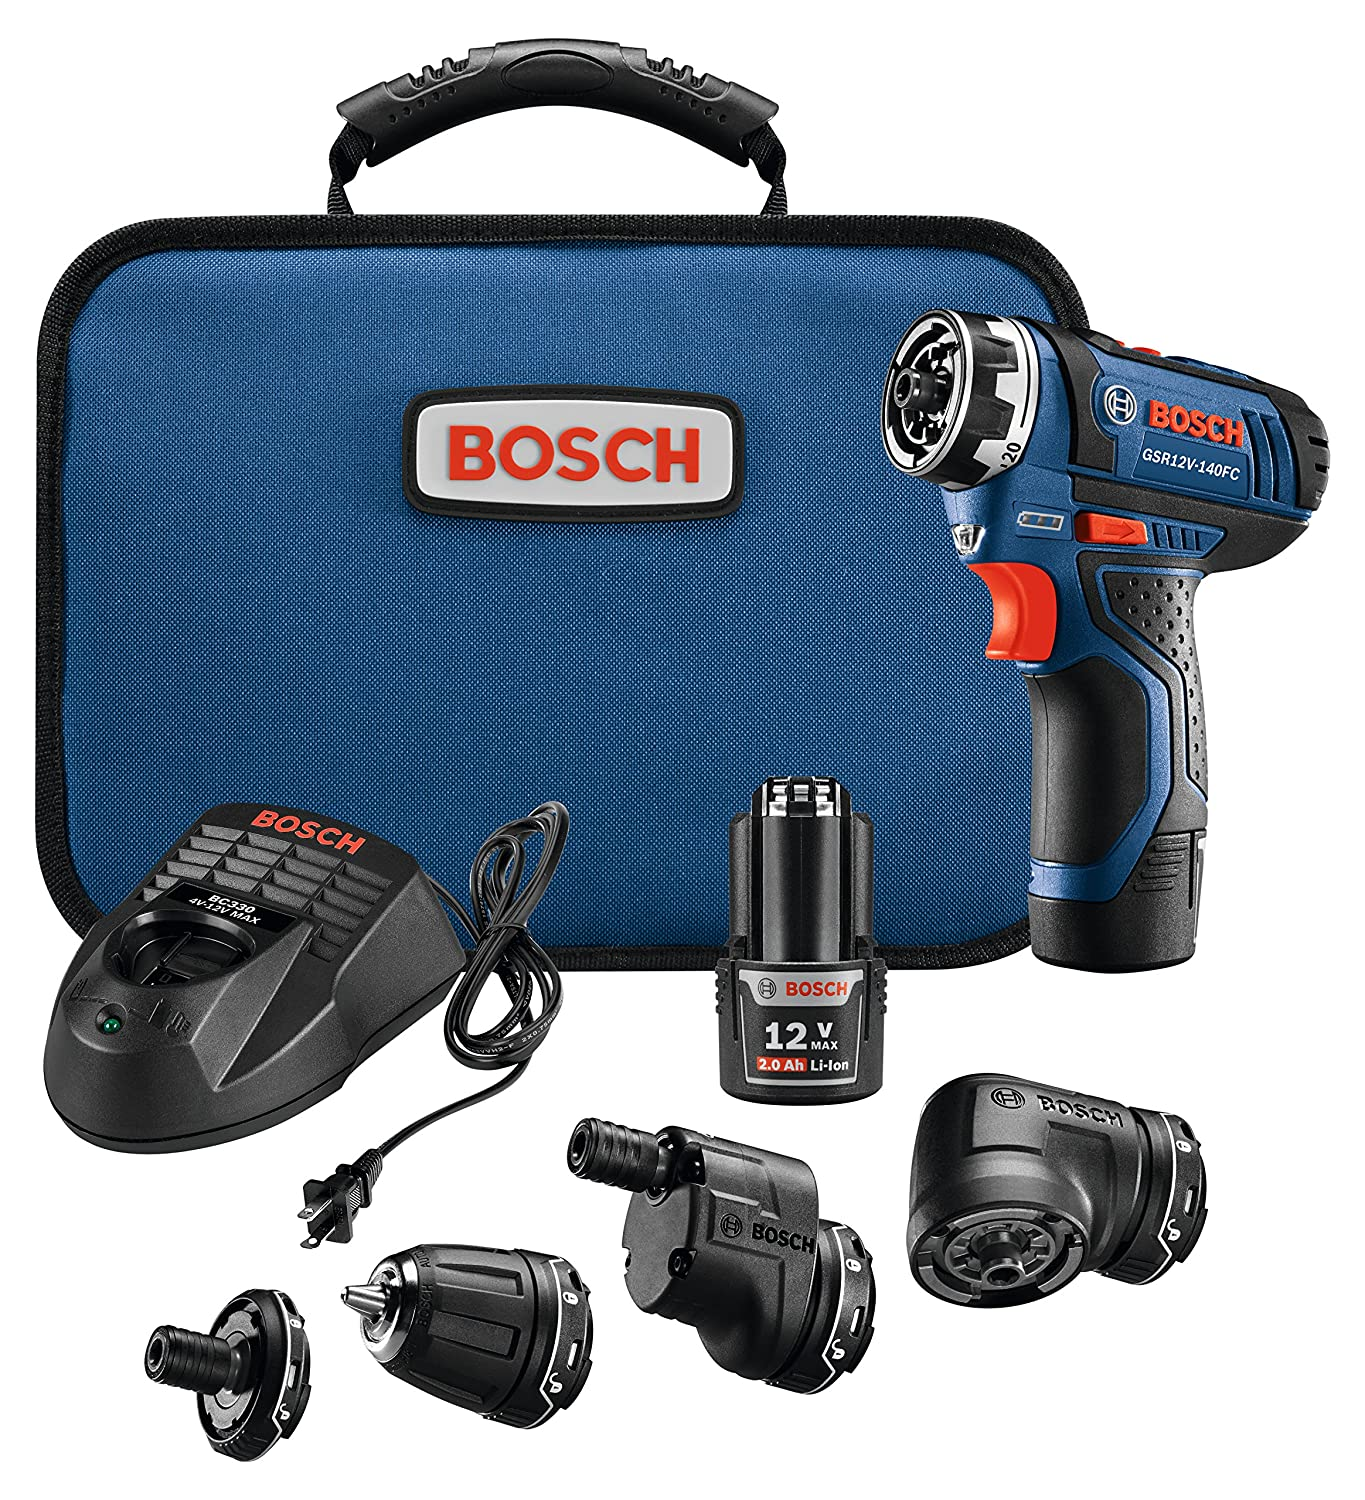 Bosch Power Tools Combo Kit - GSR12V-140FCB22 - 12V Flexiclick 5-In-1 Drill Set– One Tool Multiple Jobs - Power Drill Cordless Impact Driver - Perfect For Overhead Drilling, Contractors, DIY Project